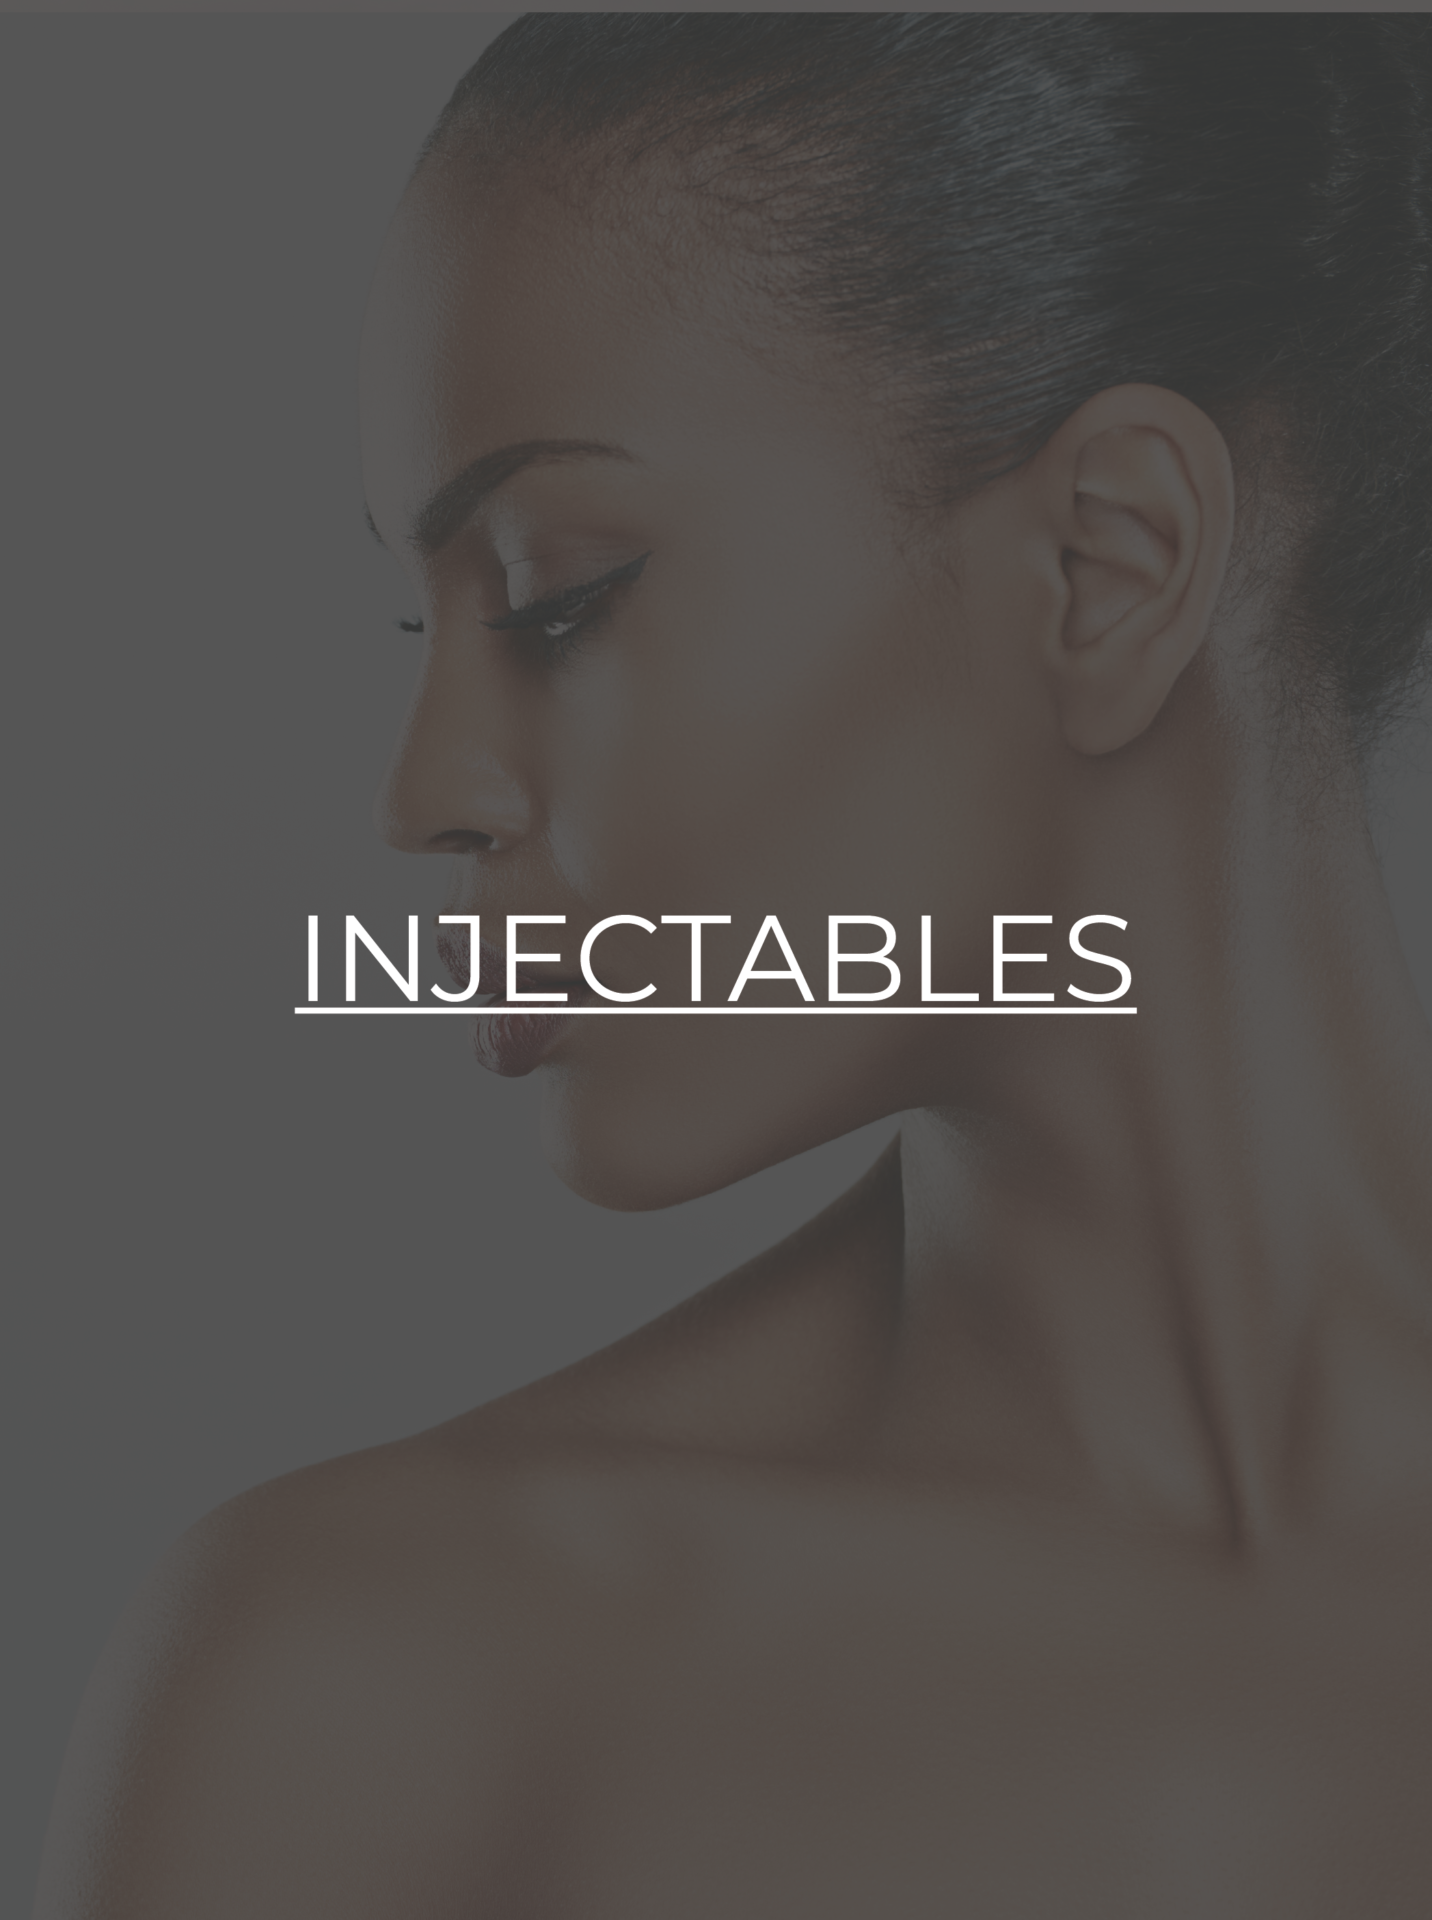 Injectables-01